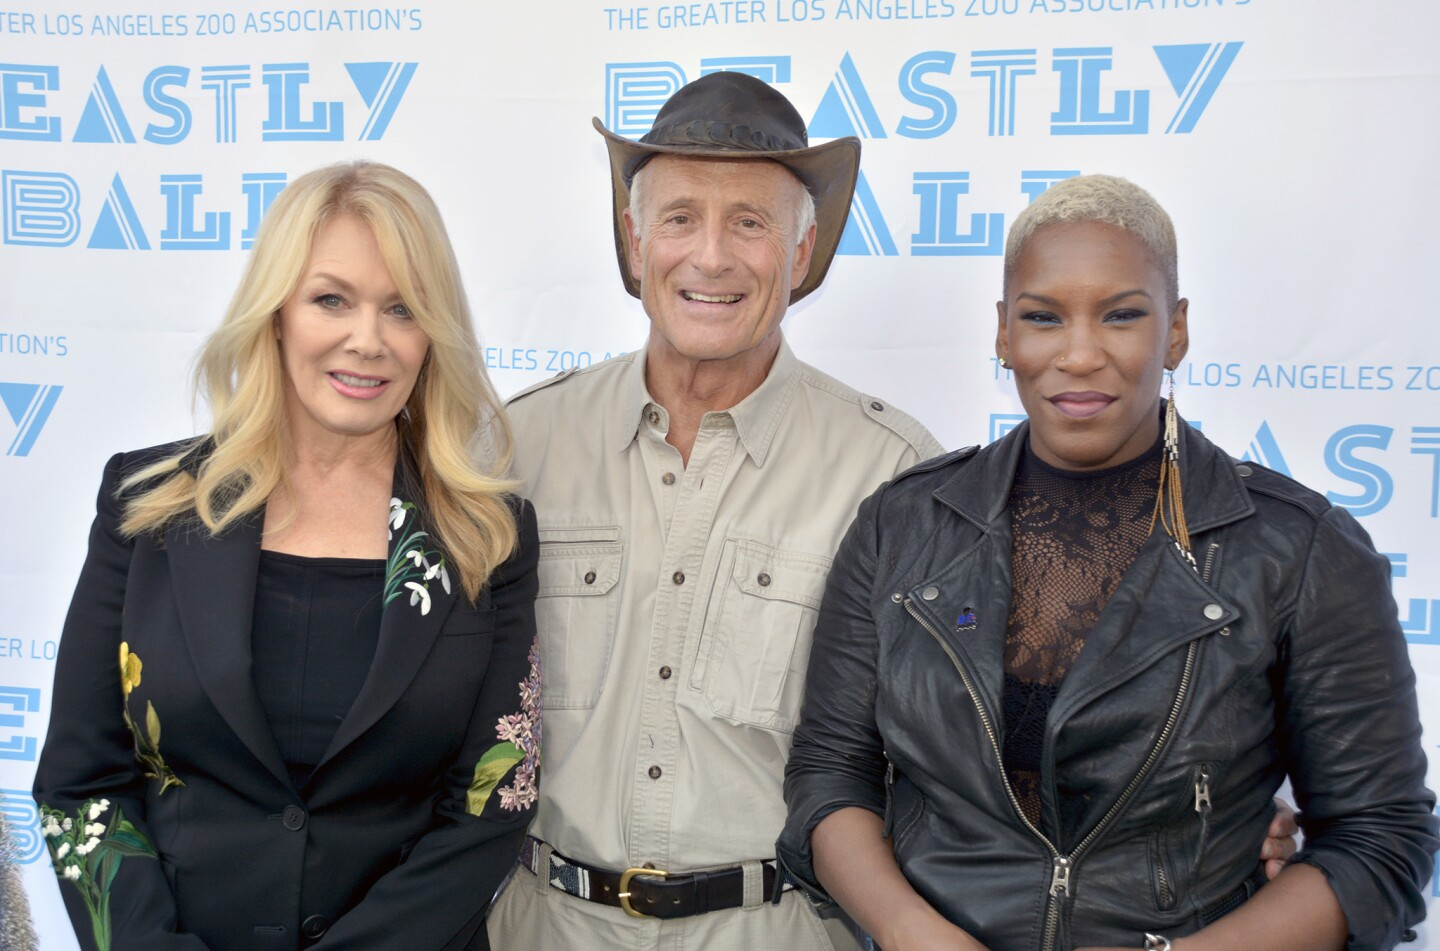 Beastly Ball honoree Jack Hanna with two of the evening's headliners, Nancy Wilson, left, and Liv Warfield.